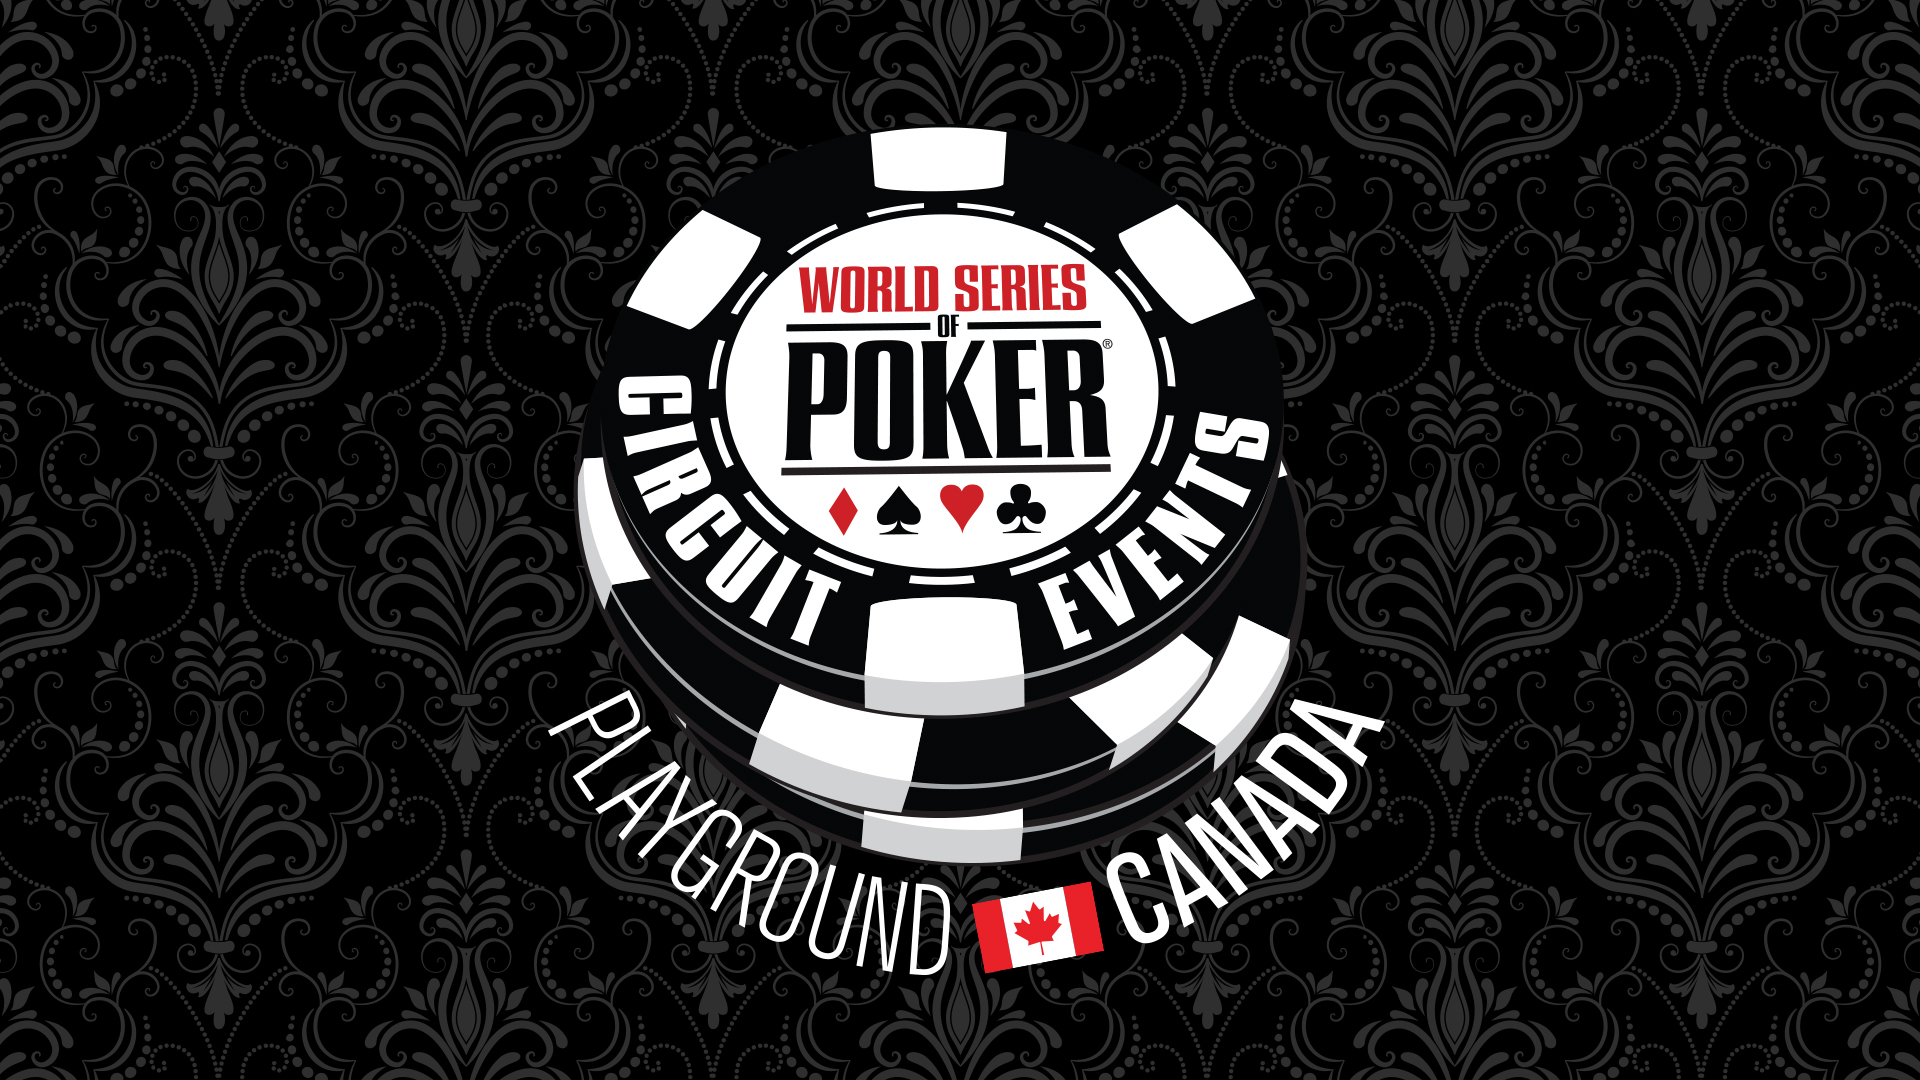 The WSOP Circuit is coming to Playground Poker Club in 2018!